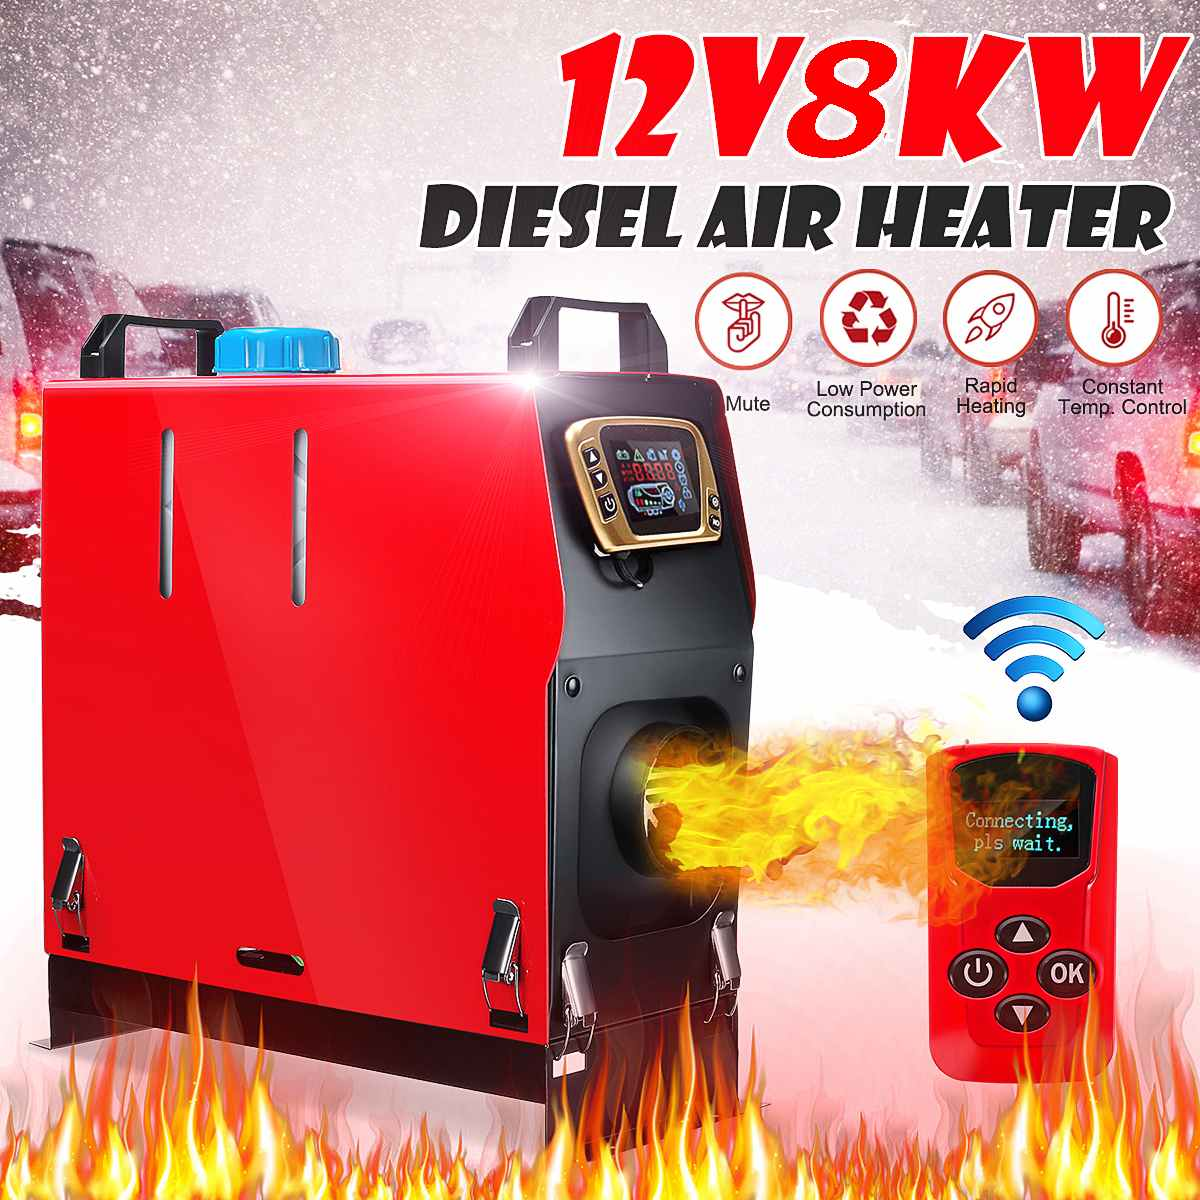 12V 1 8KW All In One Diesel Air Heater Host 8KW Adjustable 1 Hole LCD English Remote Control Integrated Parking Heater Machine|Heating & Fans| - AliExpress